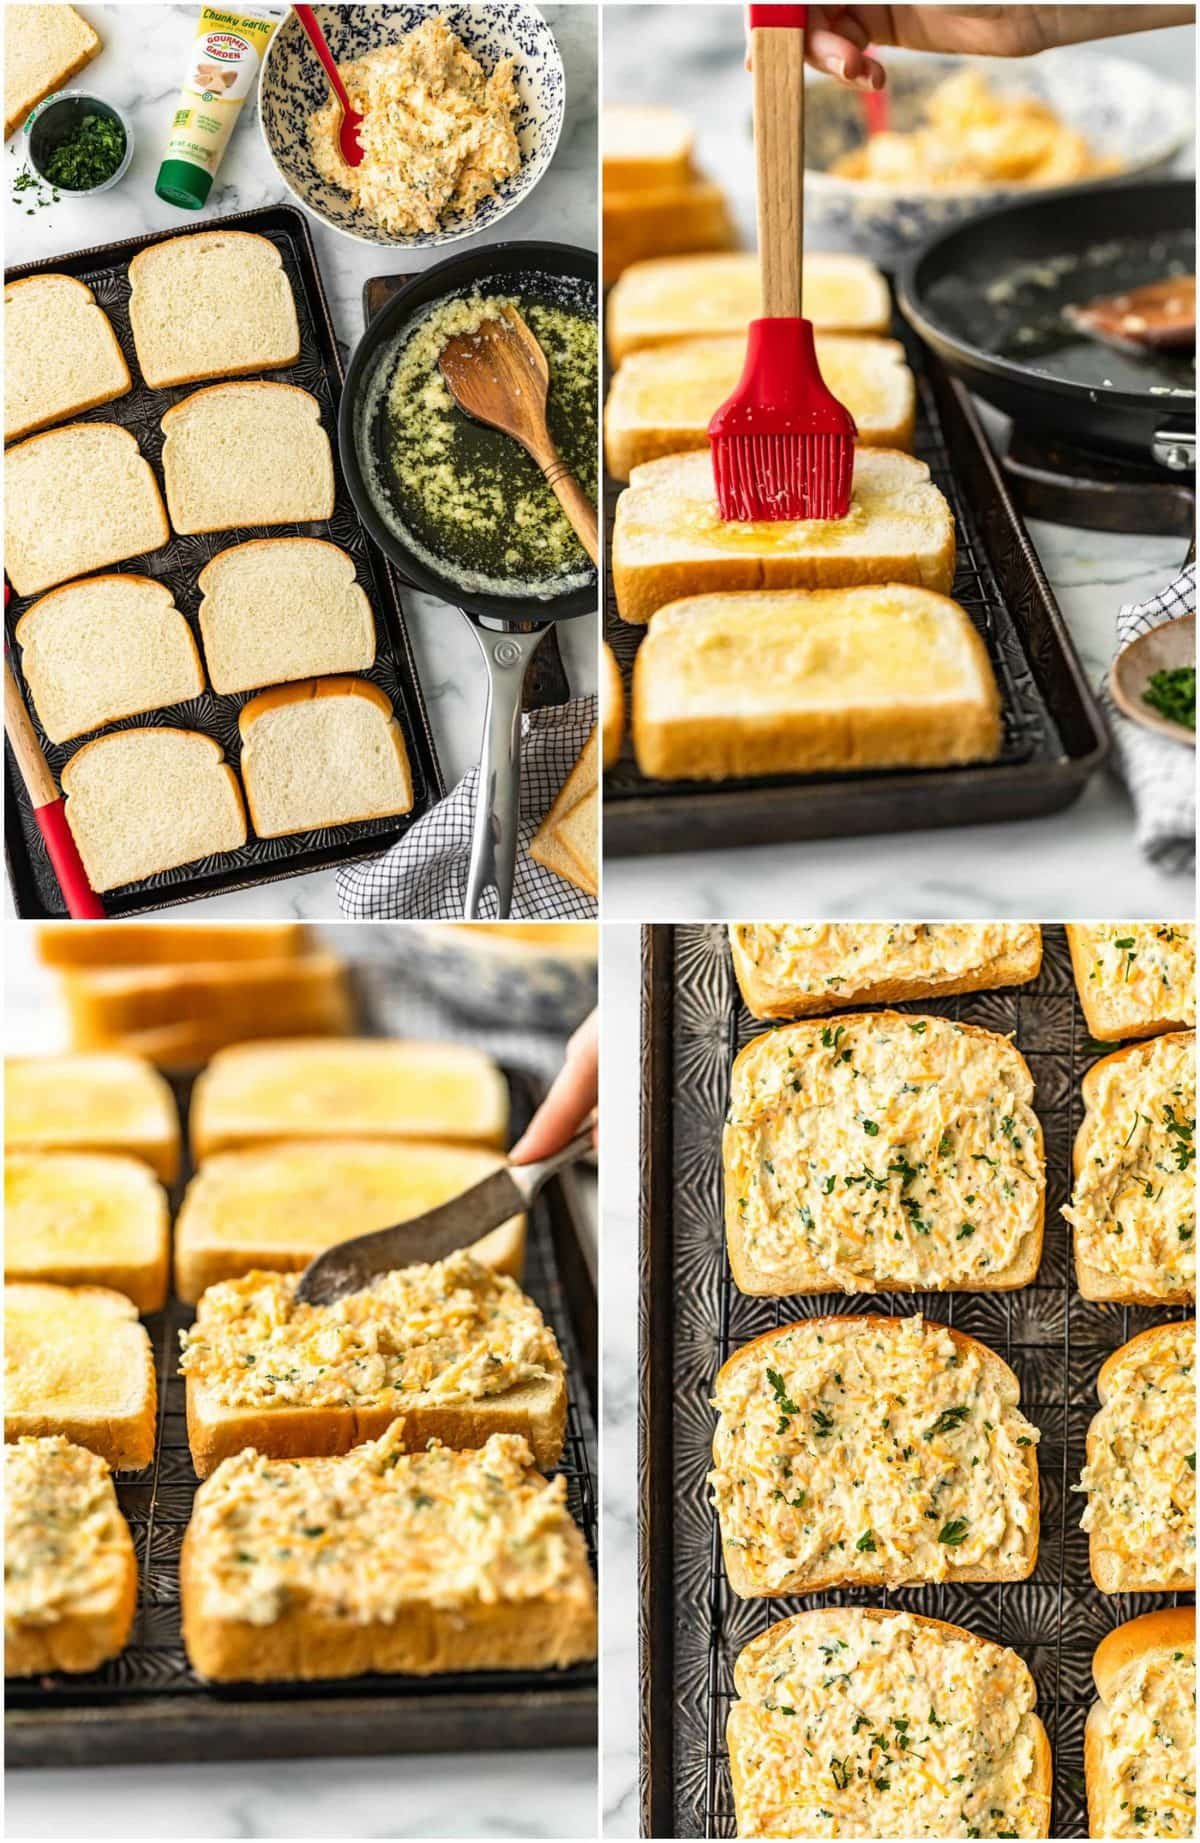 how to make cheesy garlic bread step by step photos